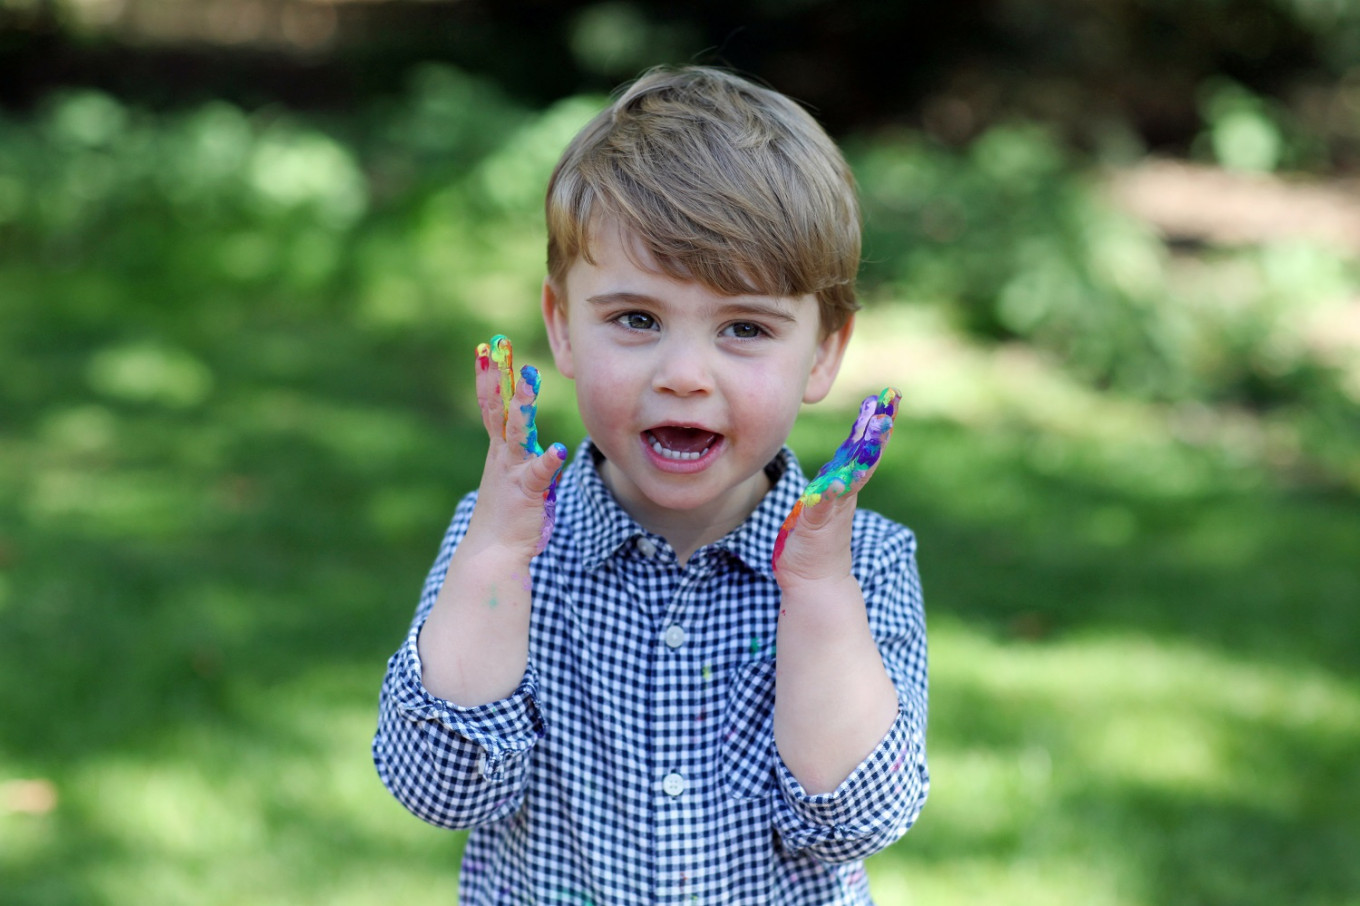 Britain's Prince Louis marks second birthday with rainbow pictures